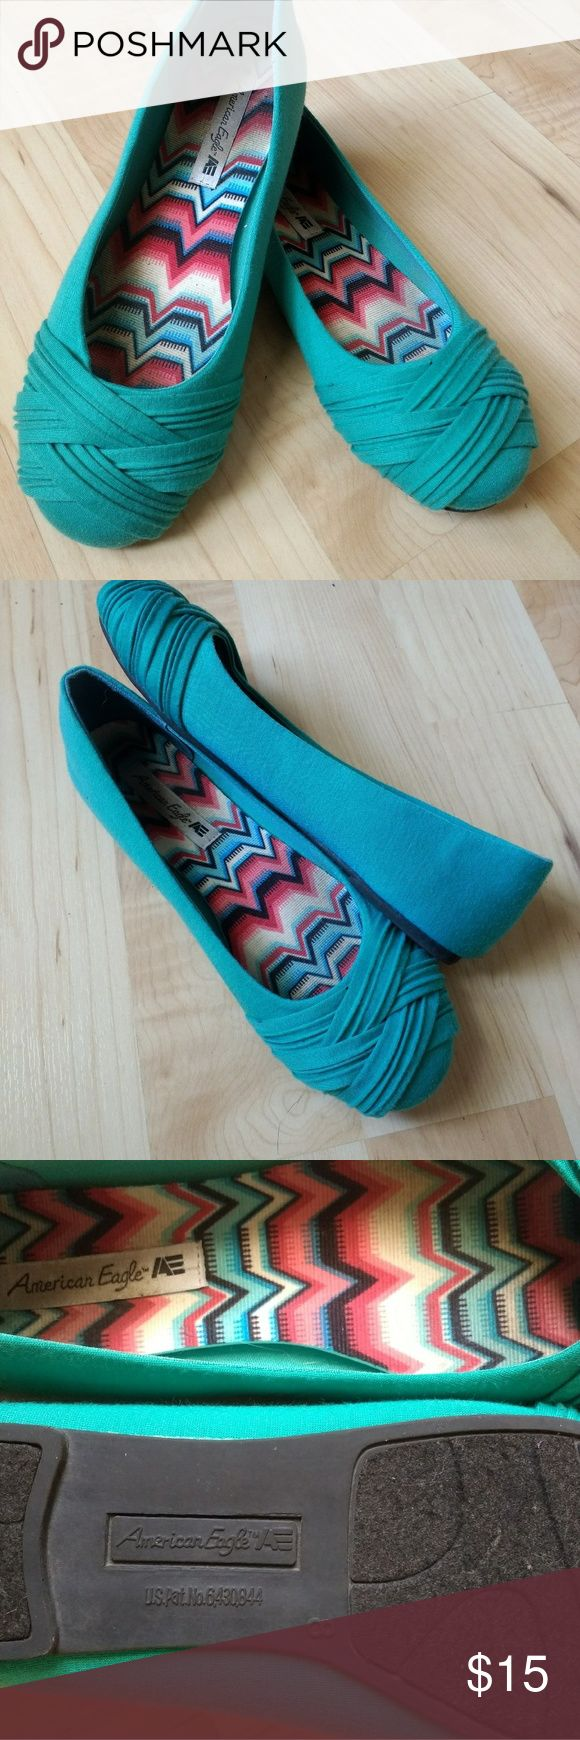 AE Teal Flat Size 8 Cute flat! Good condition. Only worn a handful of times.   Size: 8 Color: Teal Sole: Felt/Rubber American Eagle By Payless Shoes Flats & Loafers